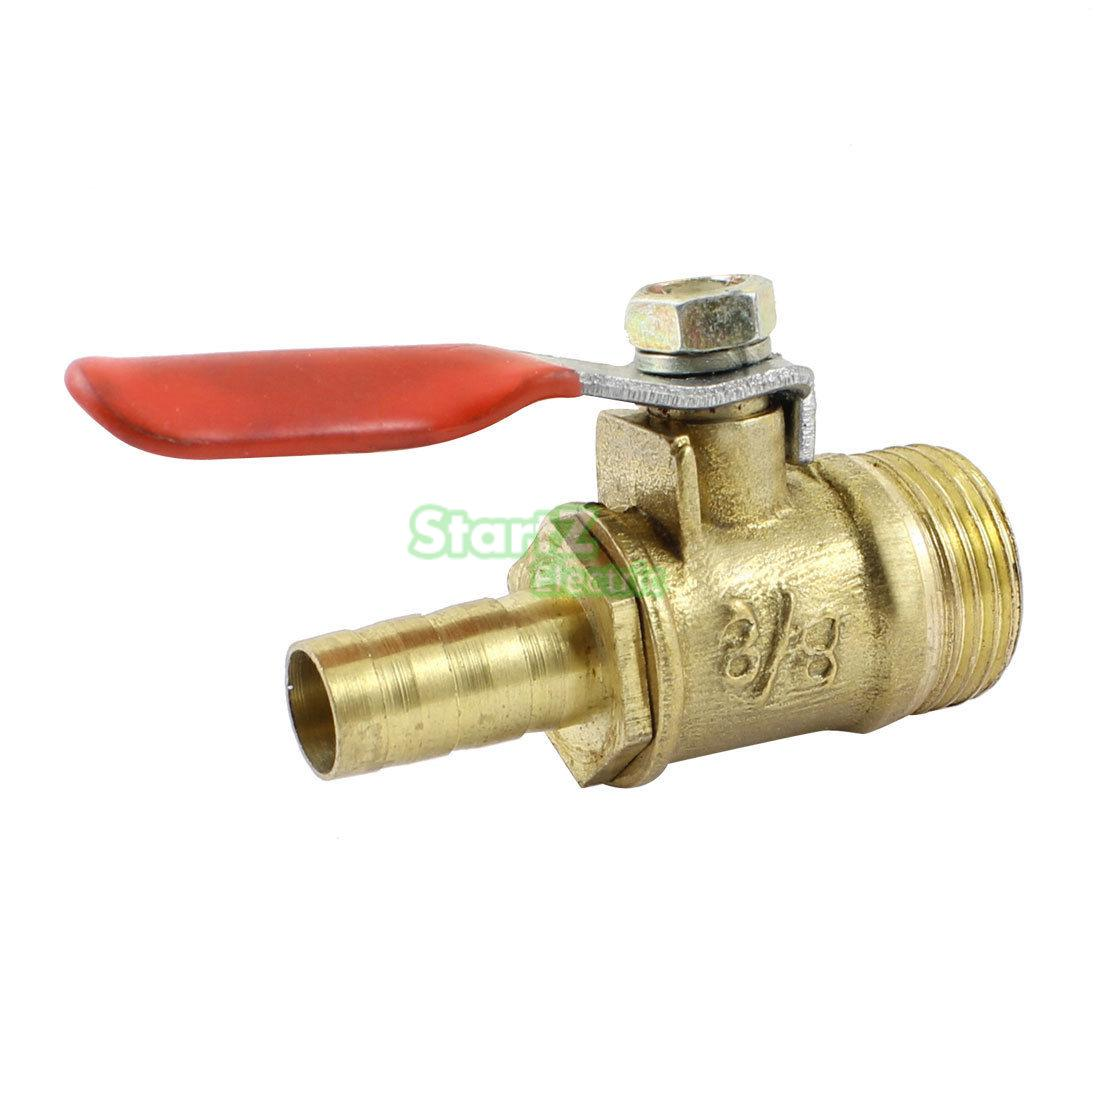 uxcell Brass Air Ball Valve Shut-Off Switch 1//4 Hose Barb to 1//4 Hose Barb Pipe Tubing Fitting Coupler 90 Degree Operation Handle 2Pcs